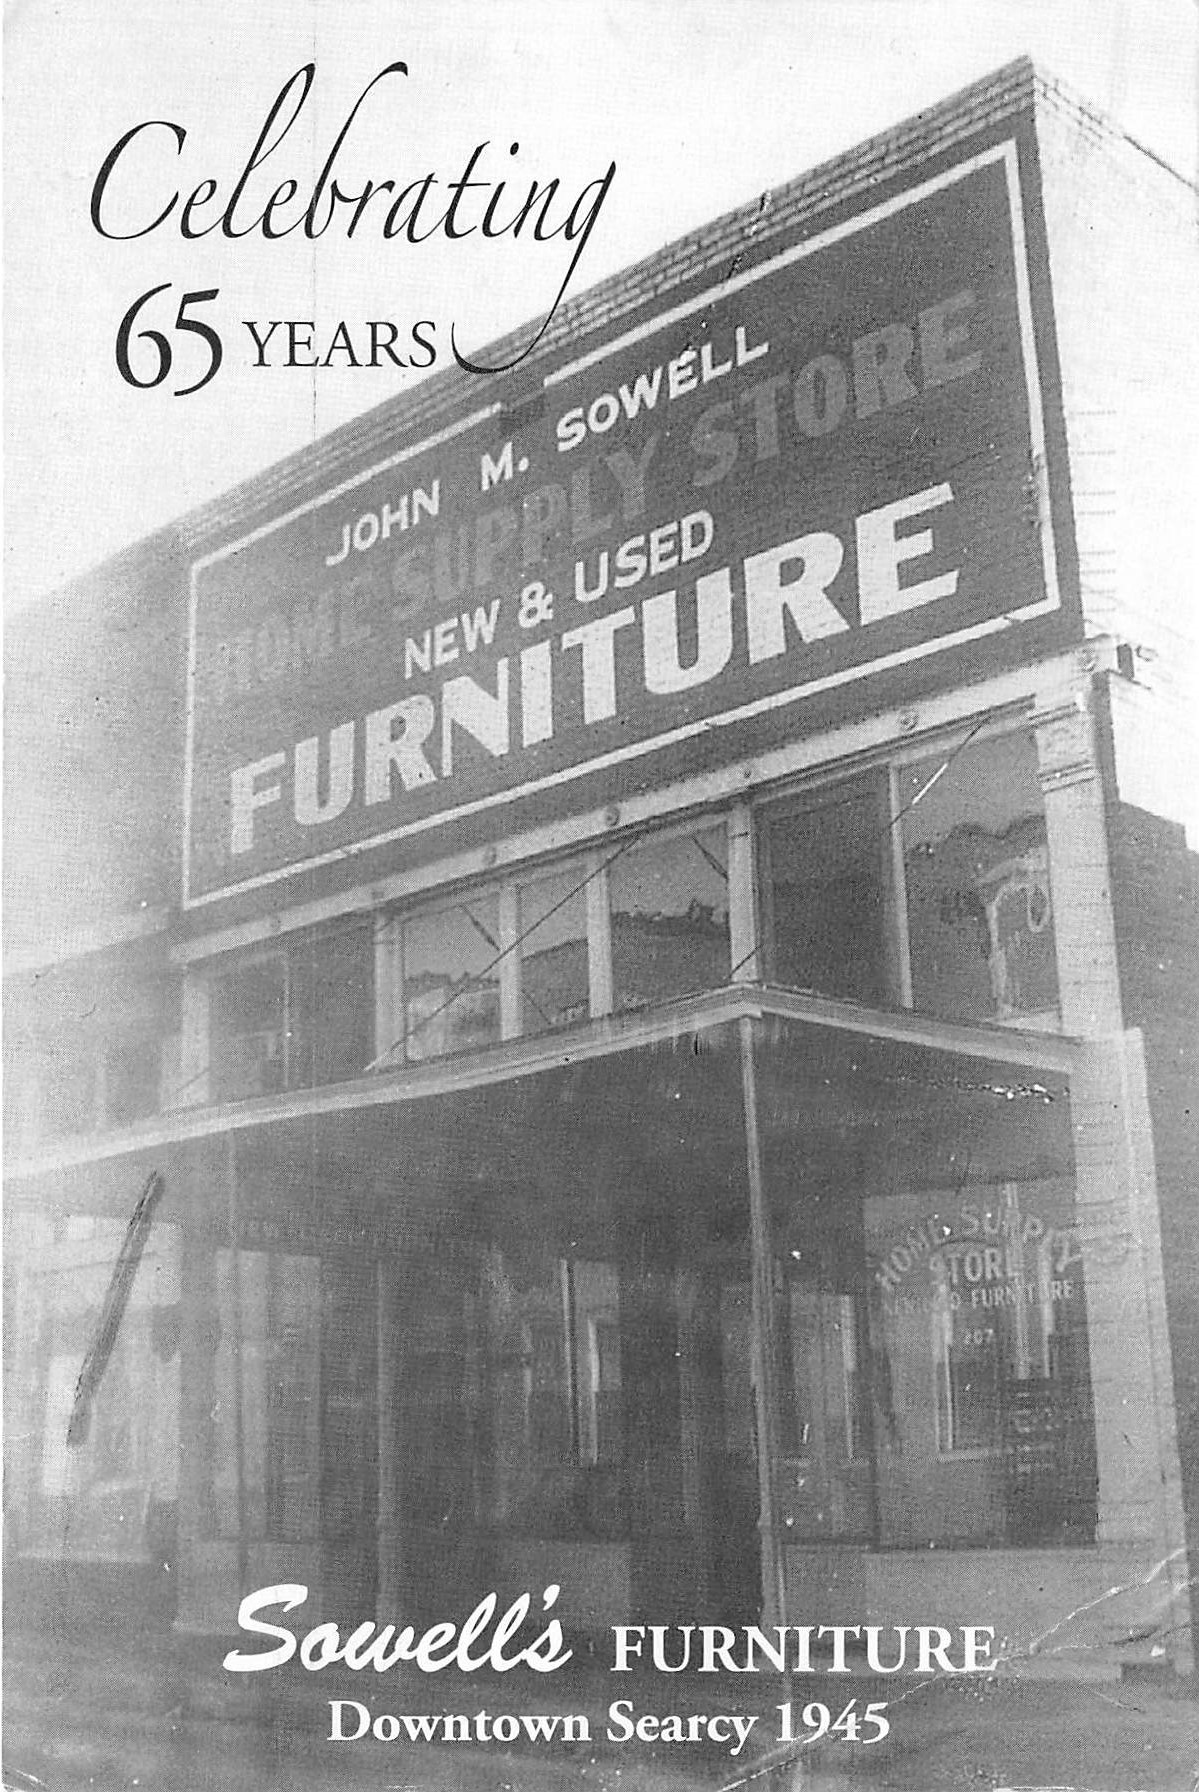 Sowell's Furniture Searcy Ar historic photo